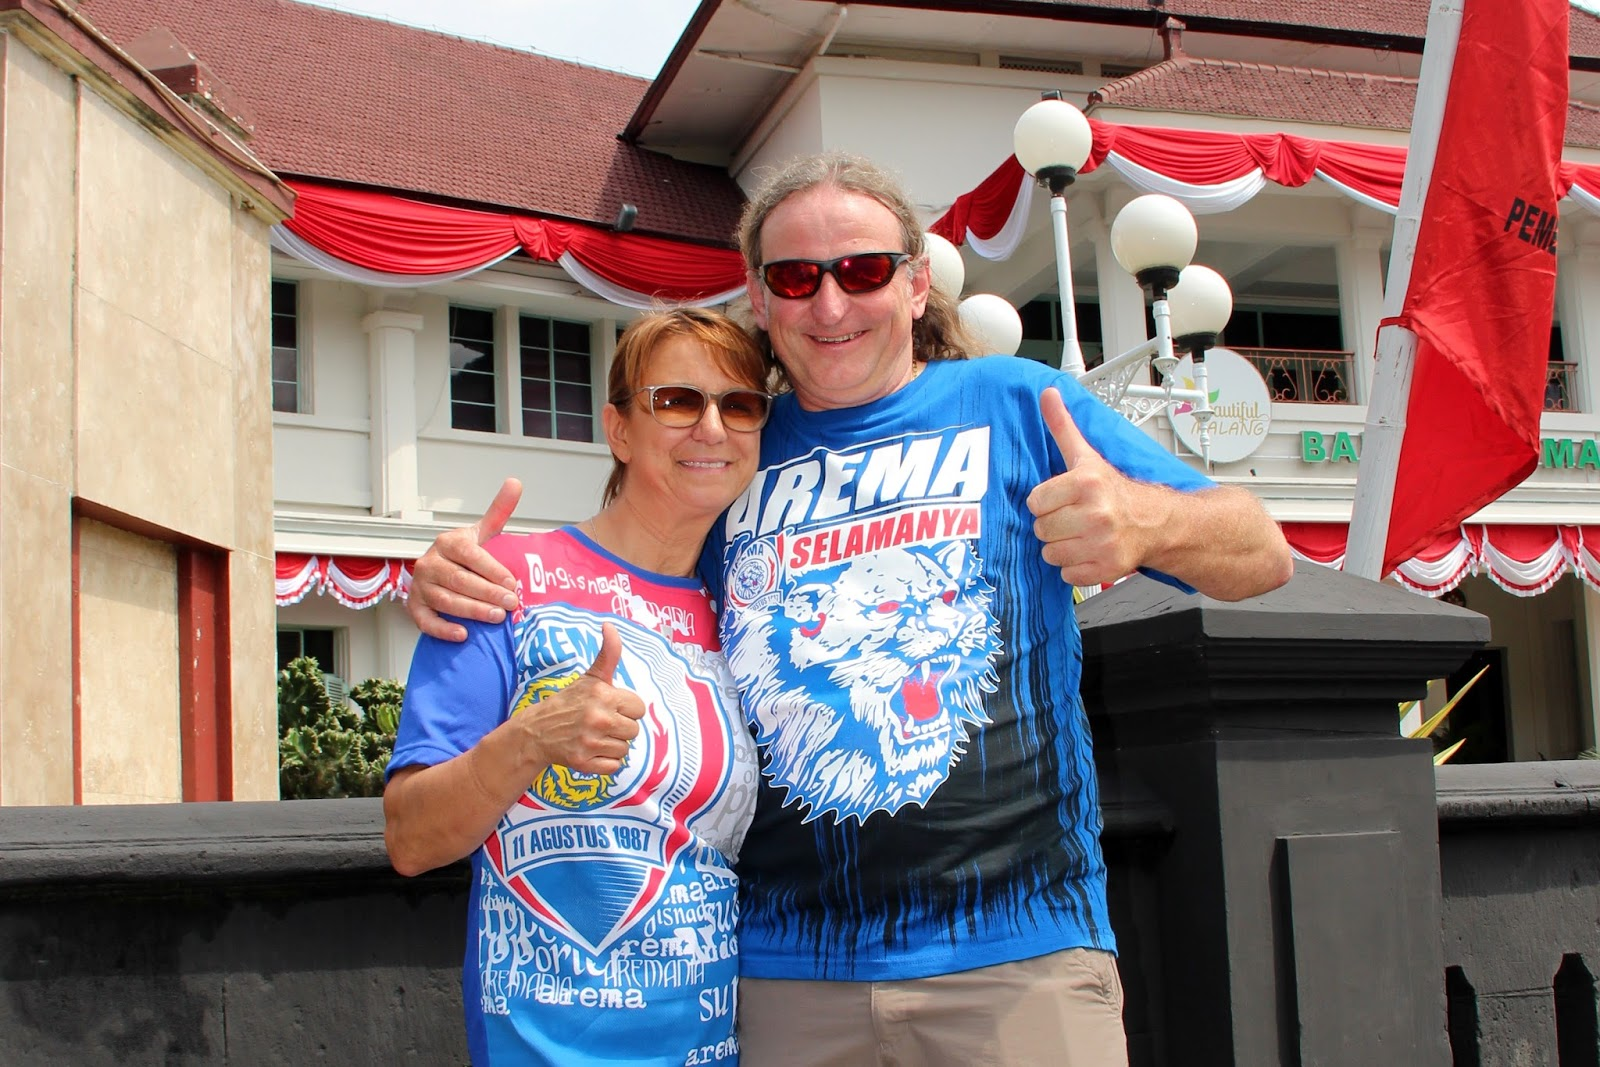 Indonesia Now With Duncan Graham September 2016 Tendencies Tshirt Imagine Line Putih L Their Trick Was To Pull On Harry Potter Cloaks Of Invincibility In This Case T Shirts Screaming Love For Arema Football Club